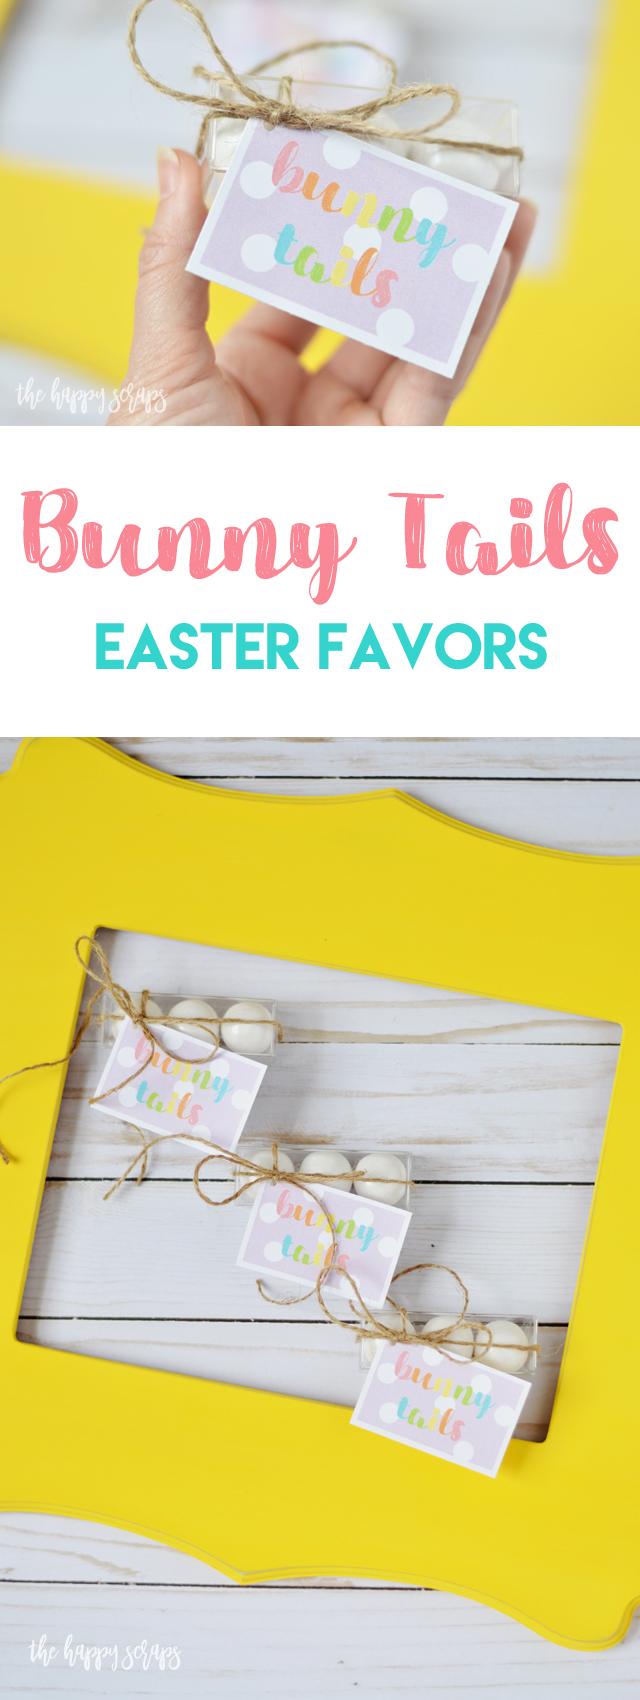 Need a little favor for an Easter get together? Check out this cute little Bunny Tails Easter Favor idea that is perfect for sharing with everyone.